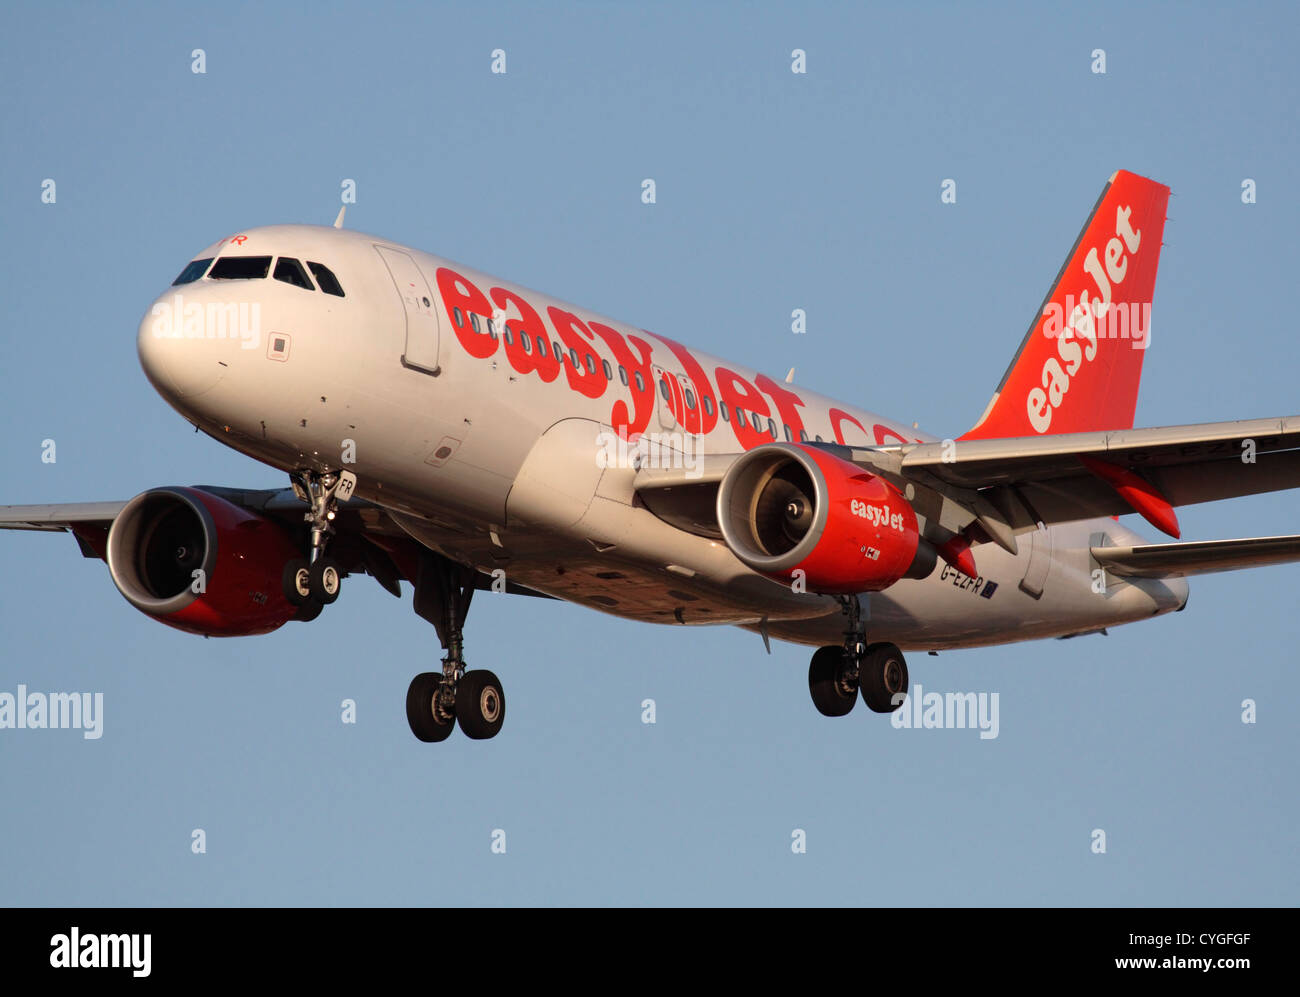 Low cost air travel. Airbus A319 passenger jet plane belonging to budget airline easyJet on approach against a clear - Stock Image